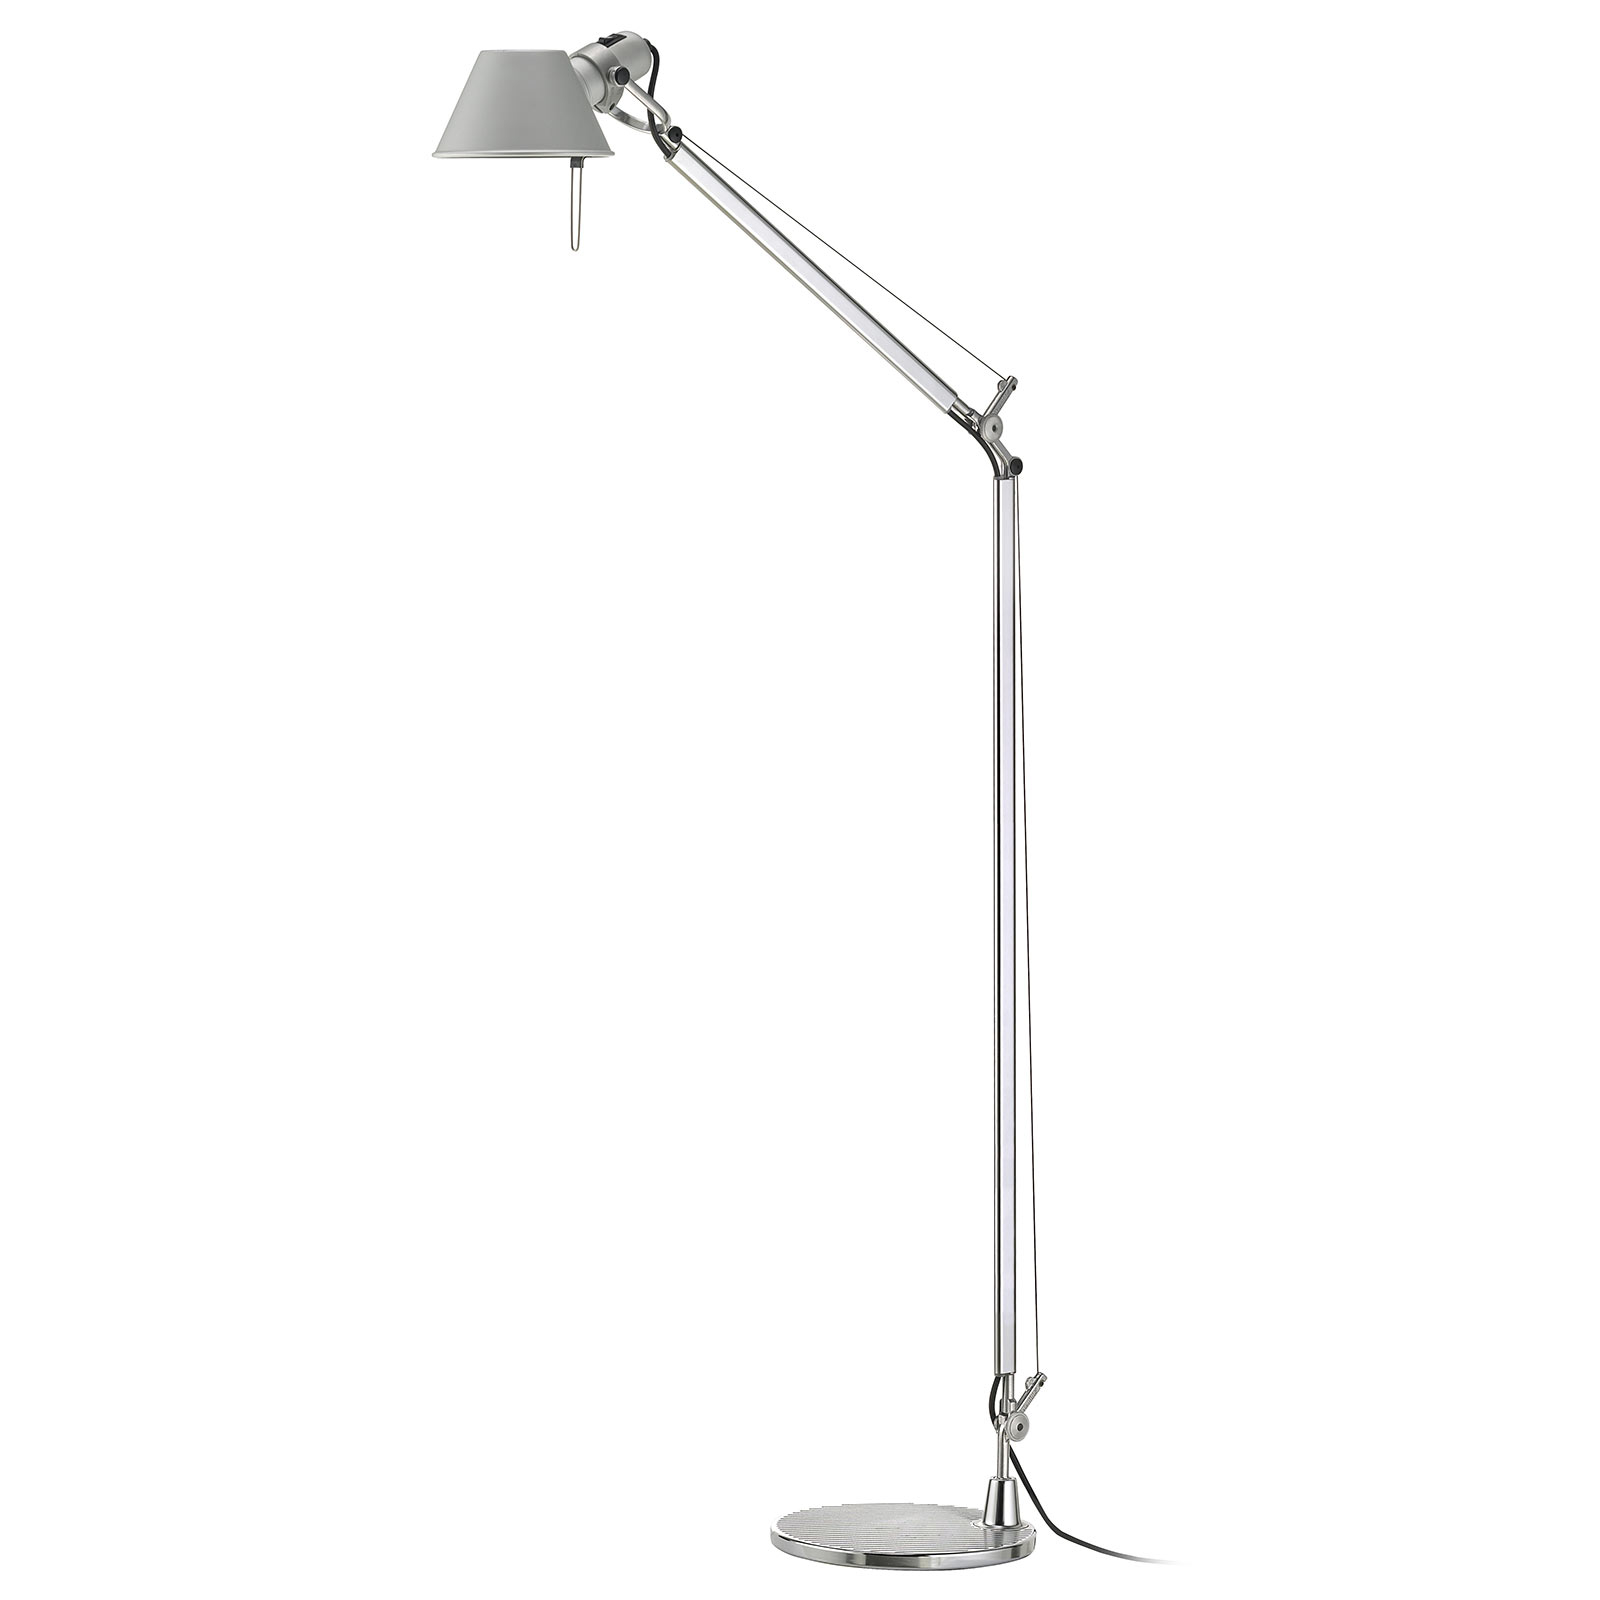 Artemide Tolomeo Reading LED-gulvlampe 2 700 K